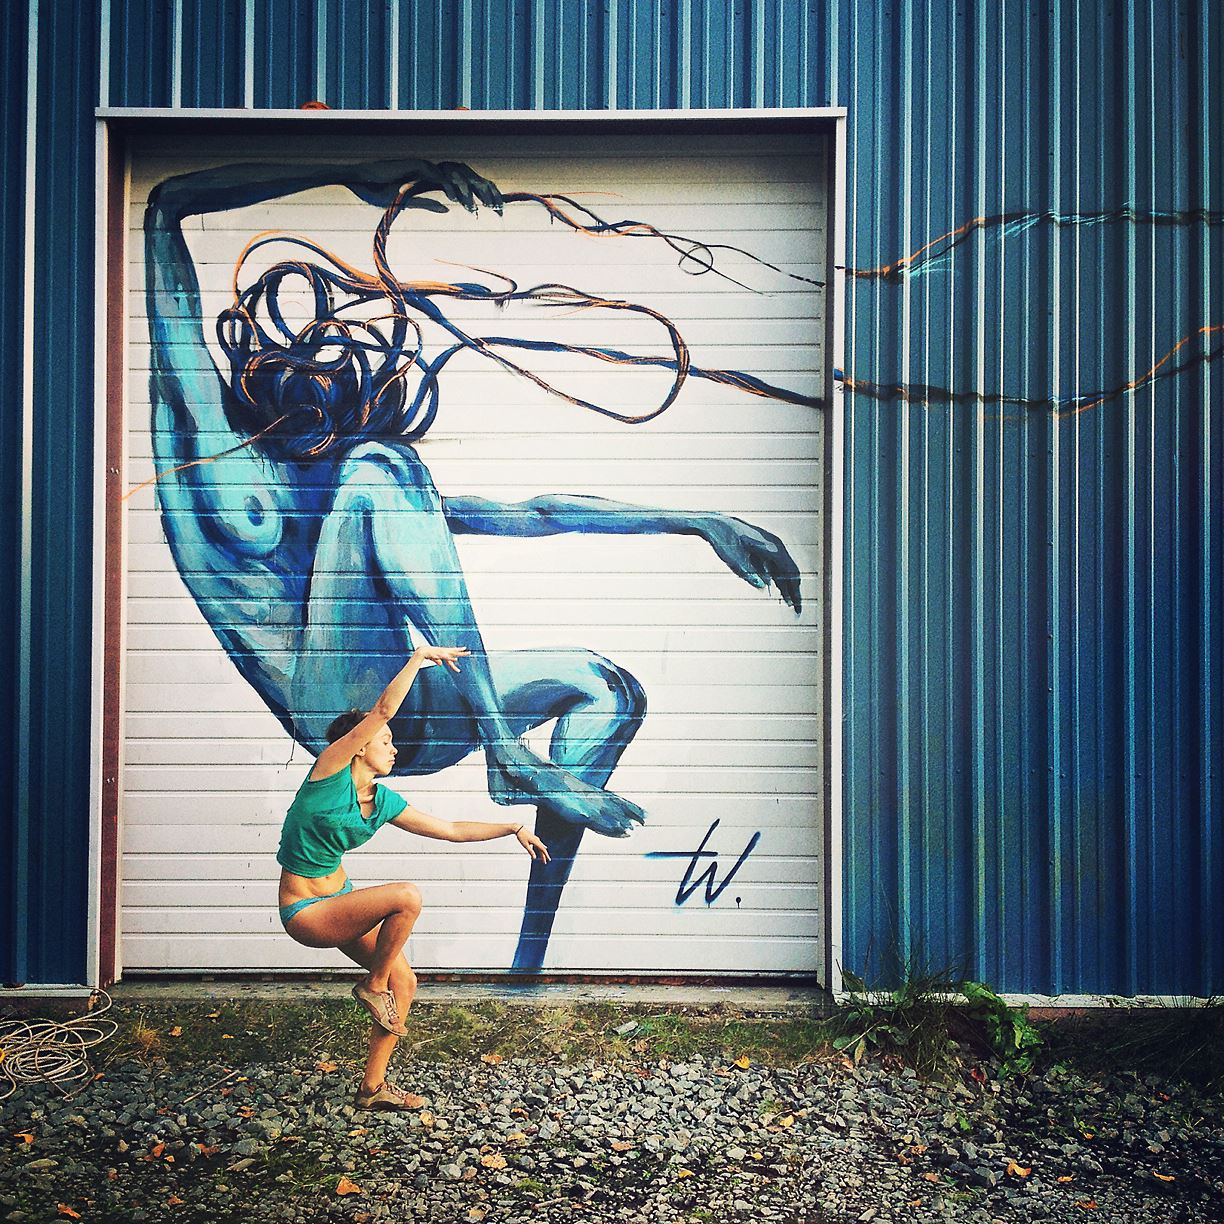 Taylor White live mural painted over the course of Sh'bang, leaving her mark in the form of a permanent mural painted on the side of our warehouse dance studio. Photo by Eric Parthum, Dancer Drea Lusion.